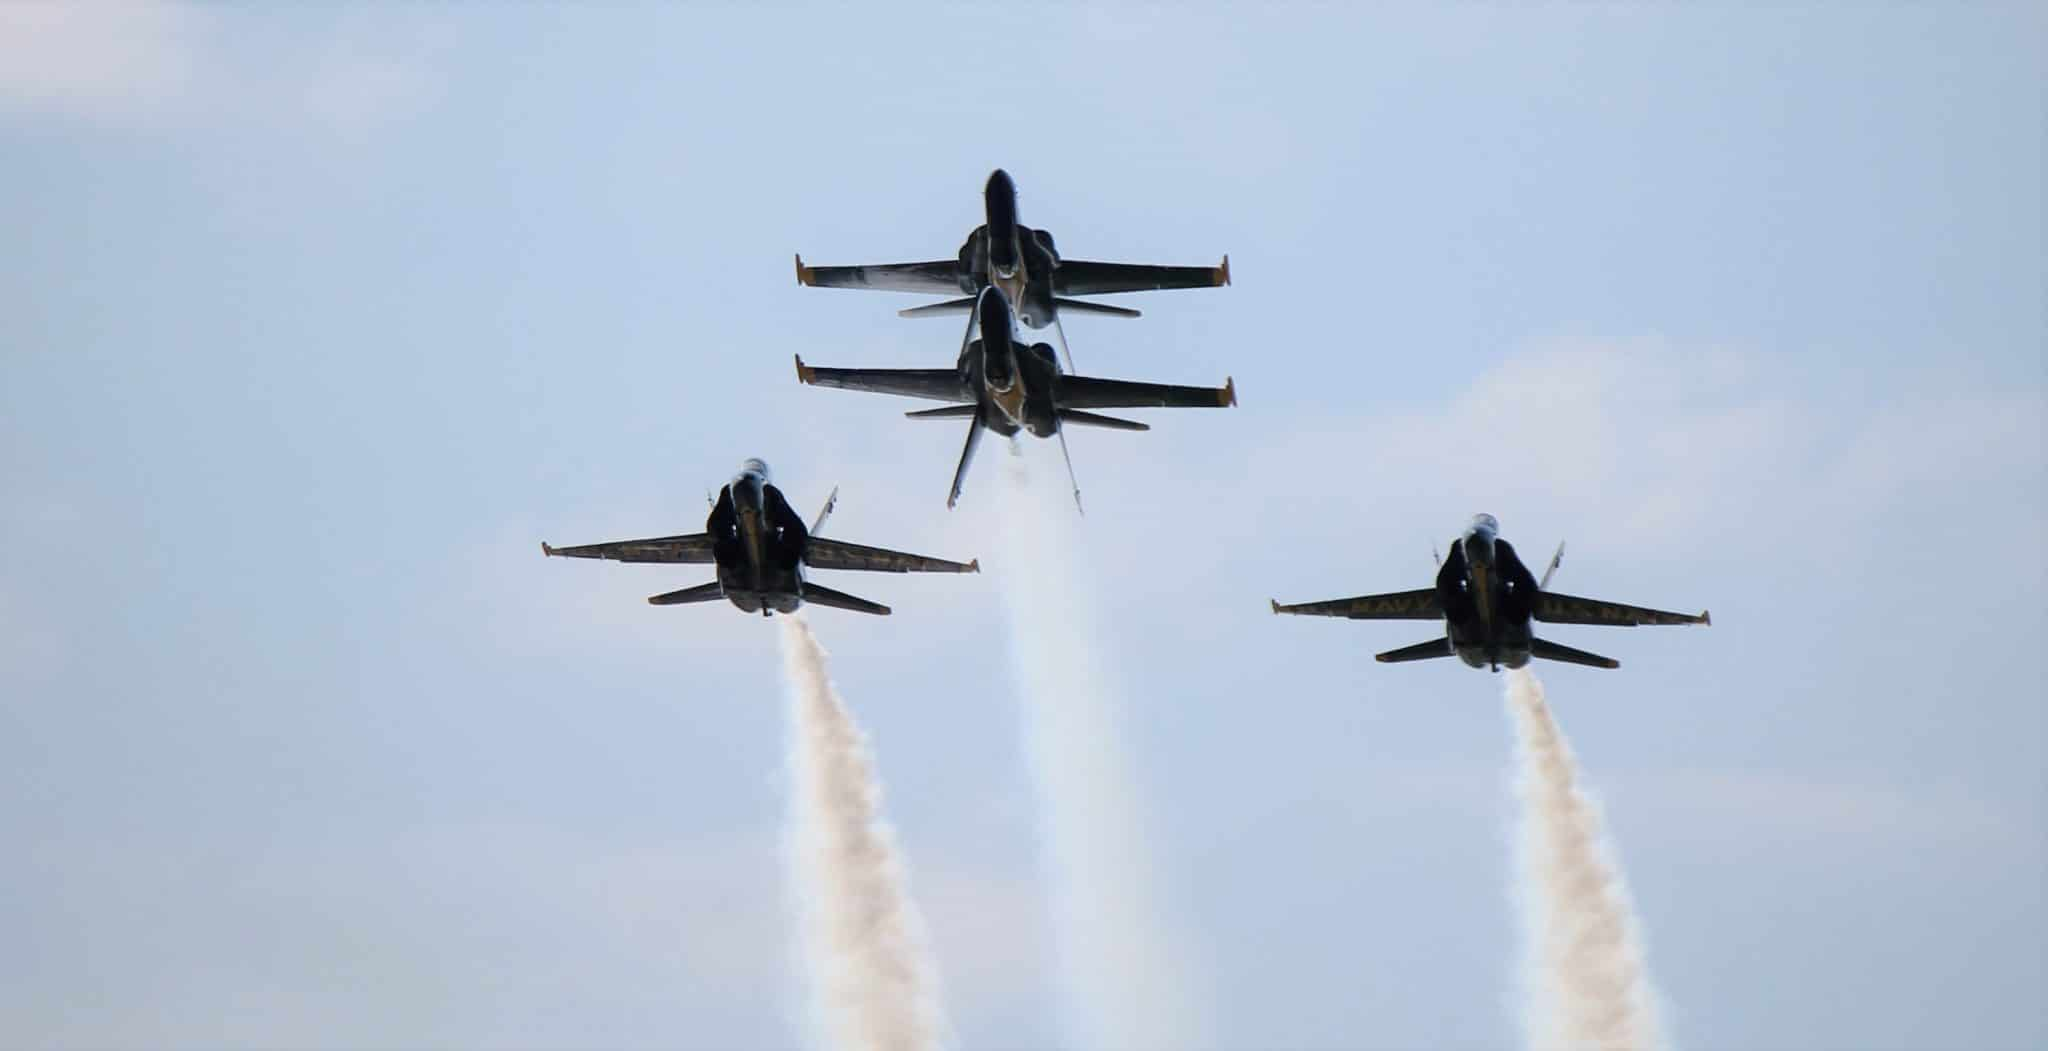 Blue Angels not coming to Hampton Roads in 2019, schedule says